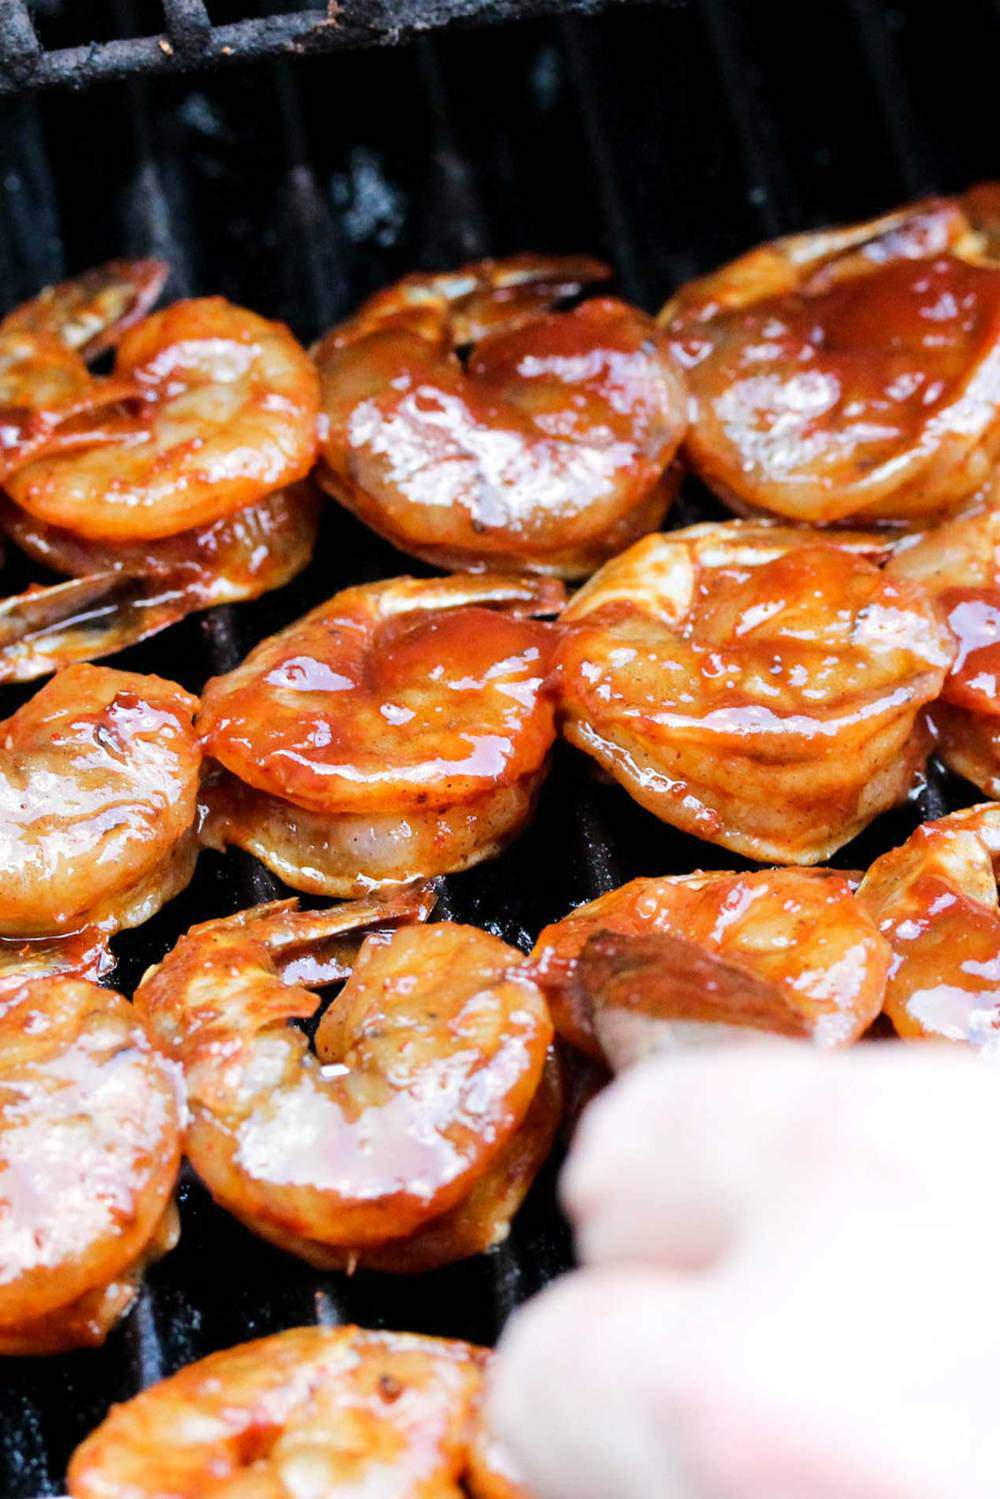 Shrimp on skewers on a grill with homemade BBQ sauce being brushed on.